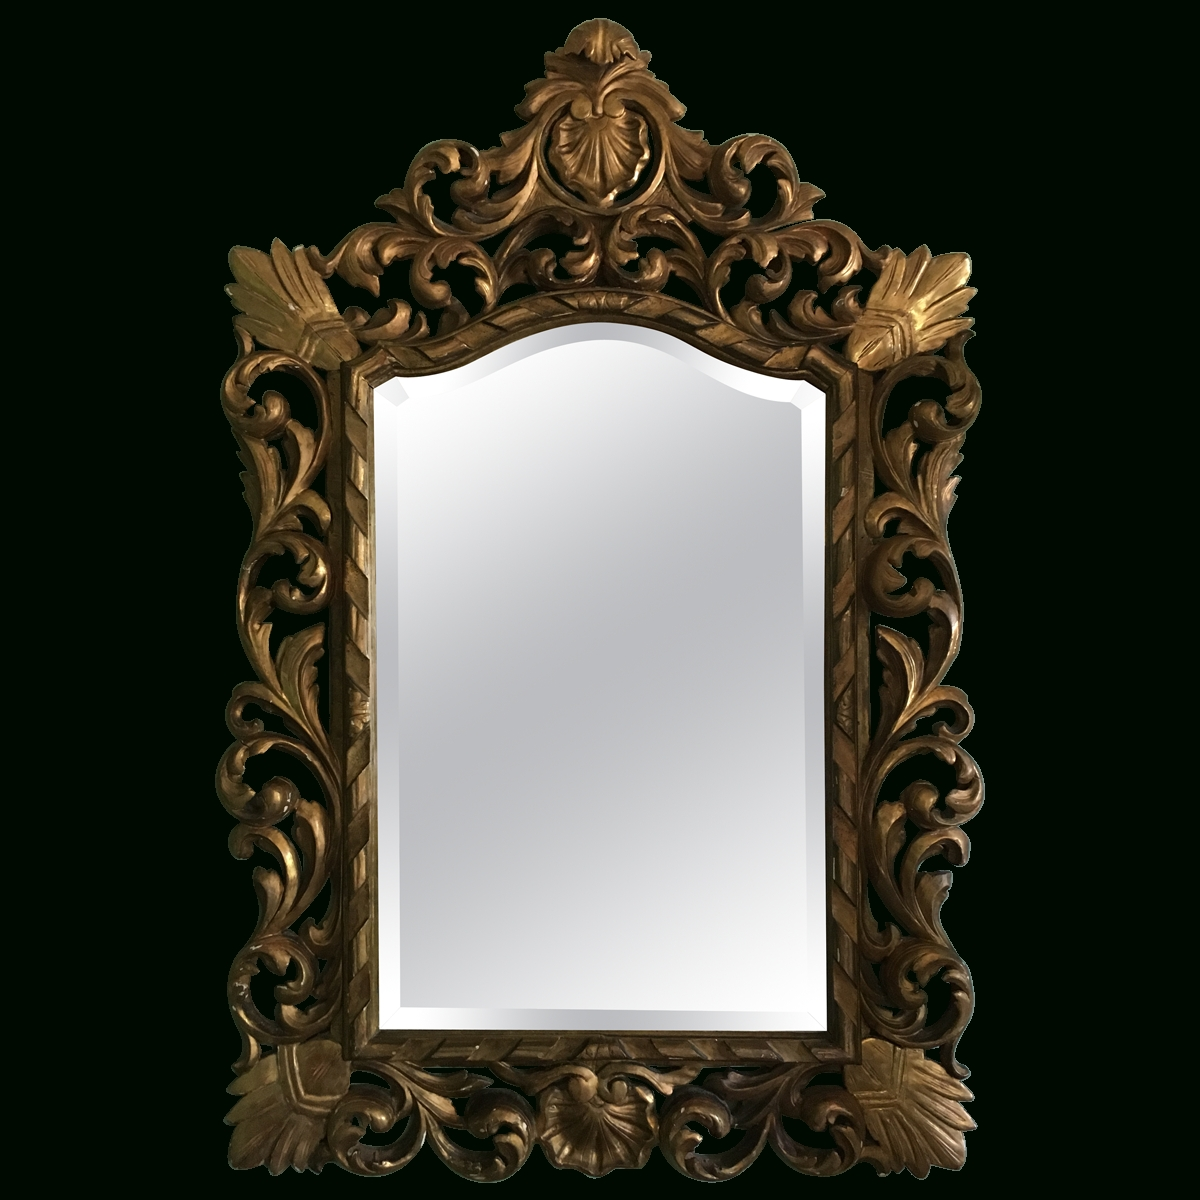 Viyet - Designer Furniture - Accessories - Antique Italian Rococo inside Rococo Style Mirrors (Image 14 of 15)